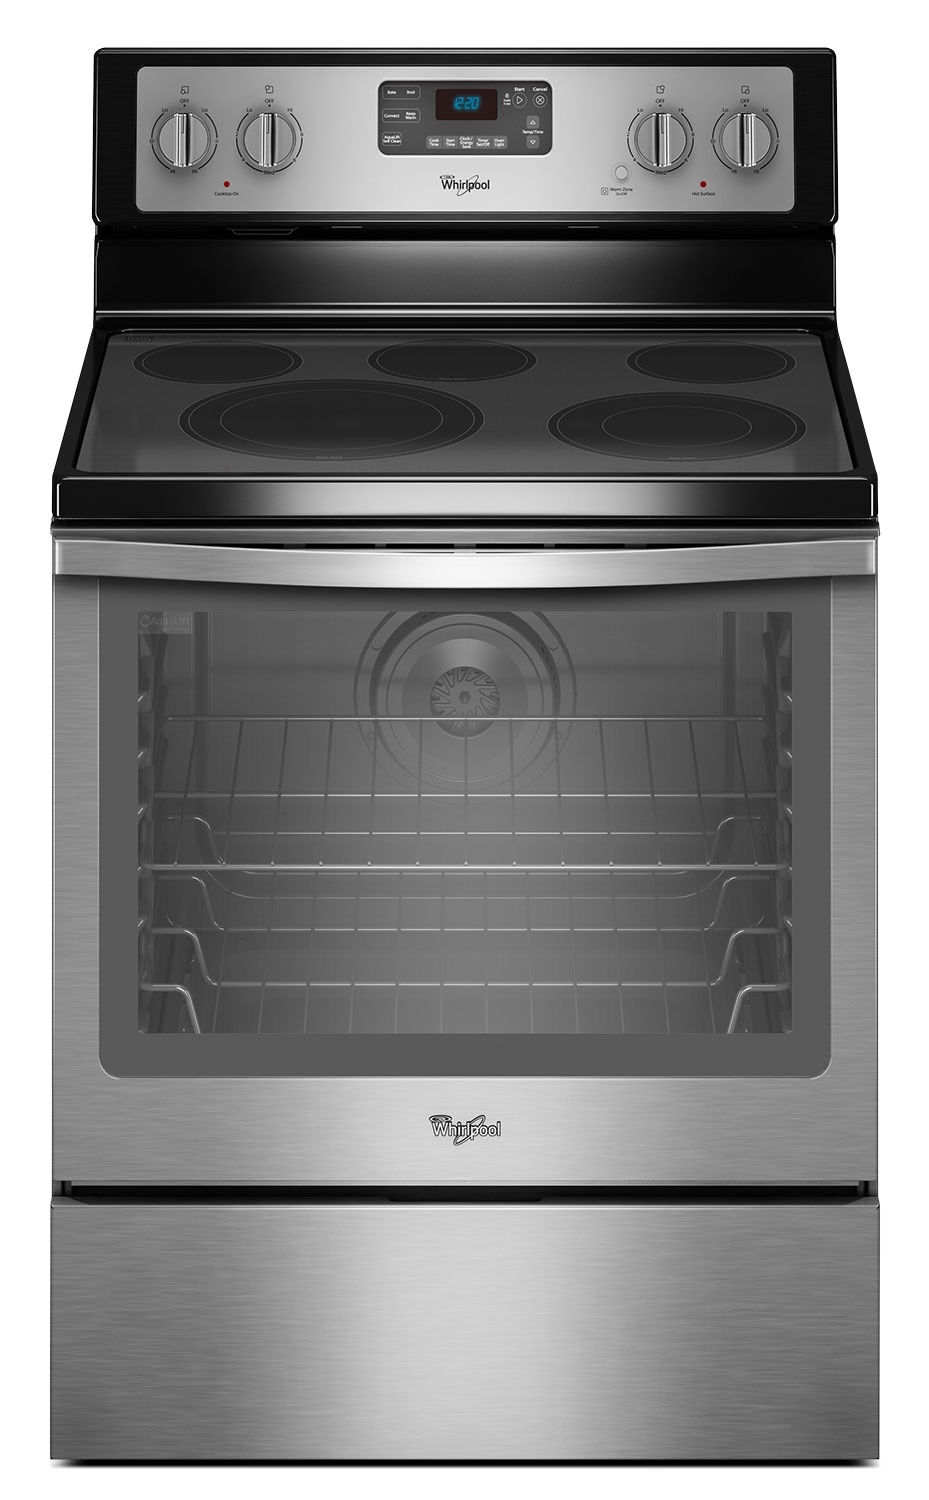 Cooking Products - Whirlpool 6.4 Cu. Ft. Electric Range with AquaLift® Technology - Stainless Steel